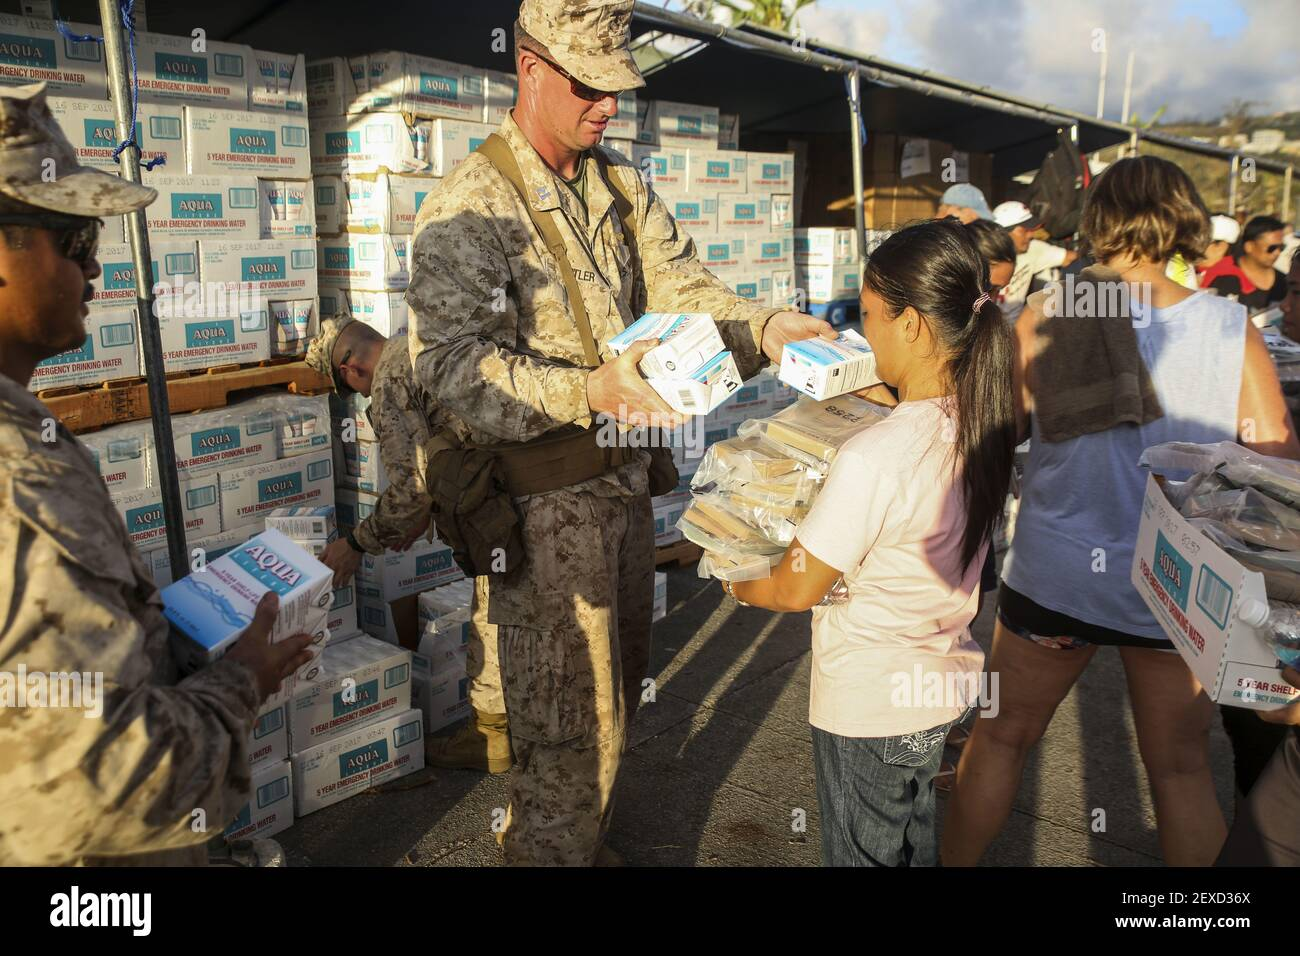 SAIPAN (Aug. 9, 2015) U.S. Marine Capt. Jeffery Butler distributes water at a shelter in Saipan, Aug. 9, 2015. Marines assigned to Echo Company, Battalion Landing Team 2nd Battalion, 5th Marines, 31st Marine Expeditionary Unit (31st MEU), are assisting local and federal agencies with typhoon relief efforts in Saipan after the island was struck by Typhoon Soudelor, Aug. 2-3. (Photo Cpl. Ryan C. Mains/U.S. Marine Corps) *** Please Use Credit from Credit Field *** Stock Photo